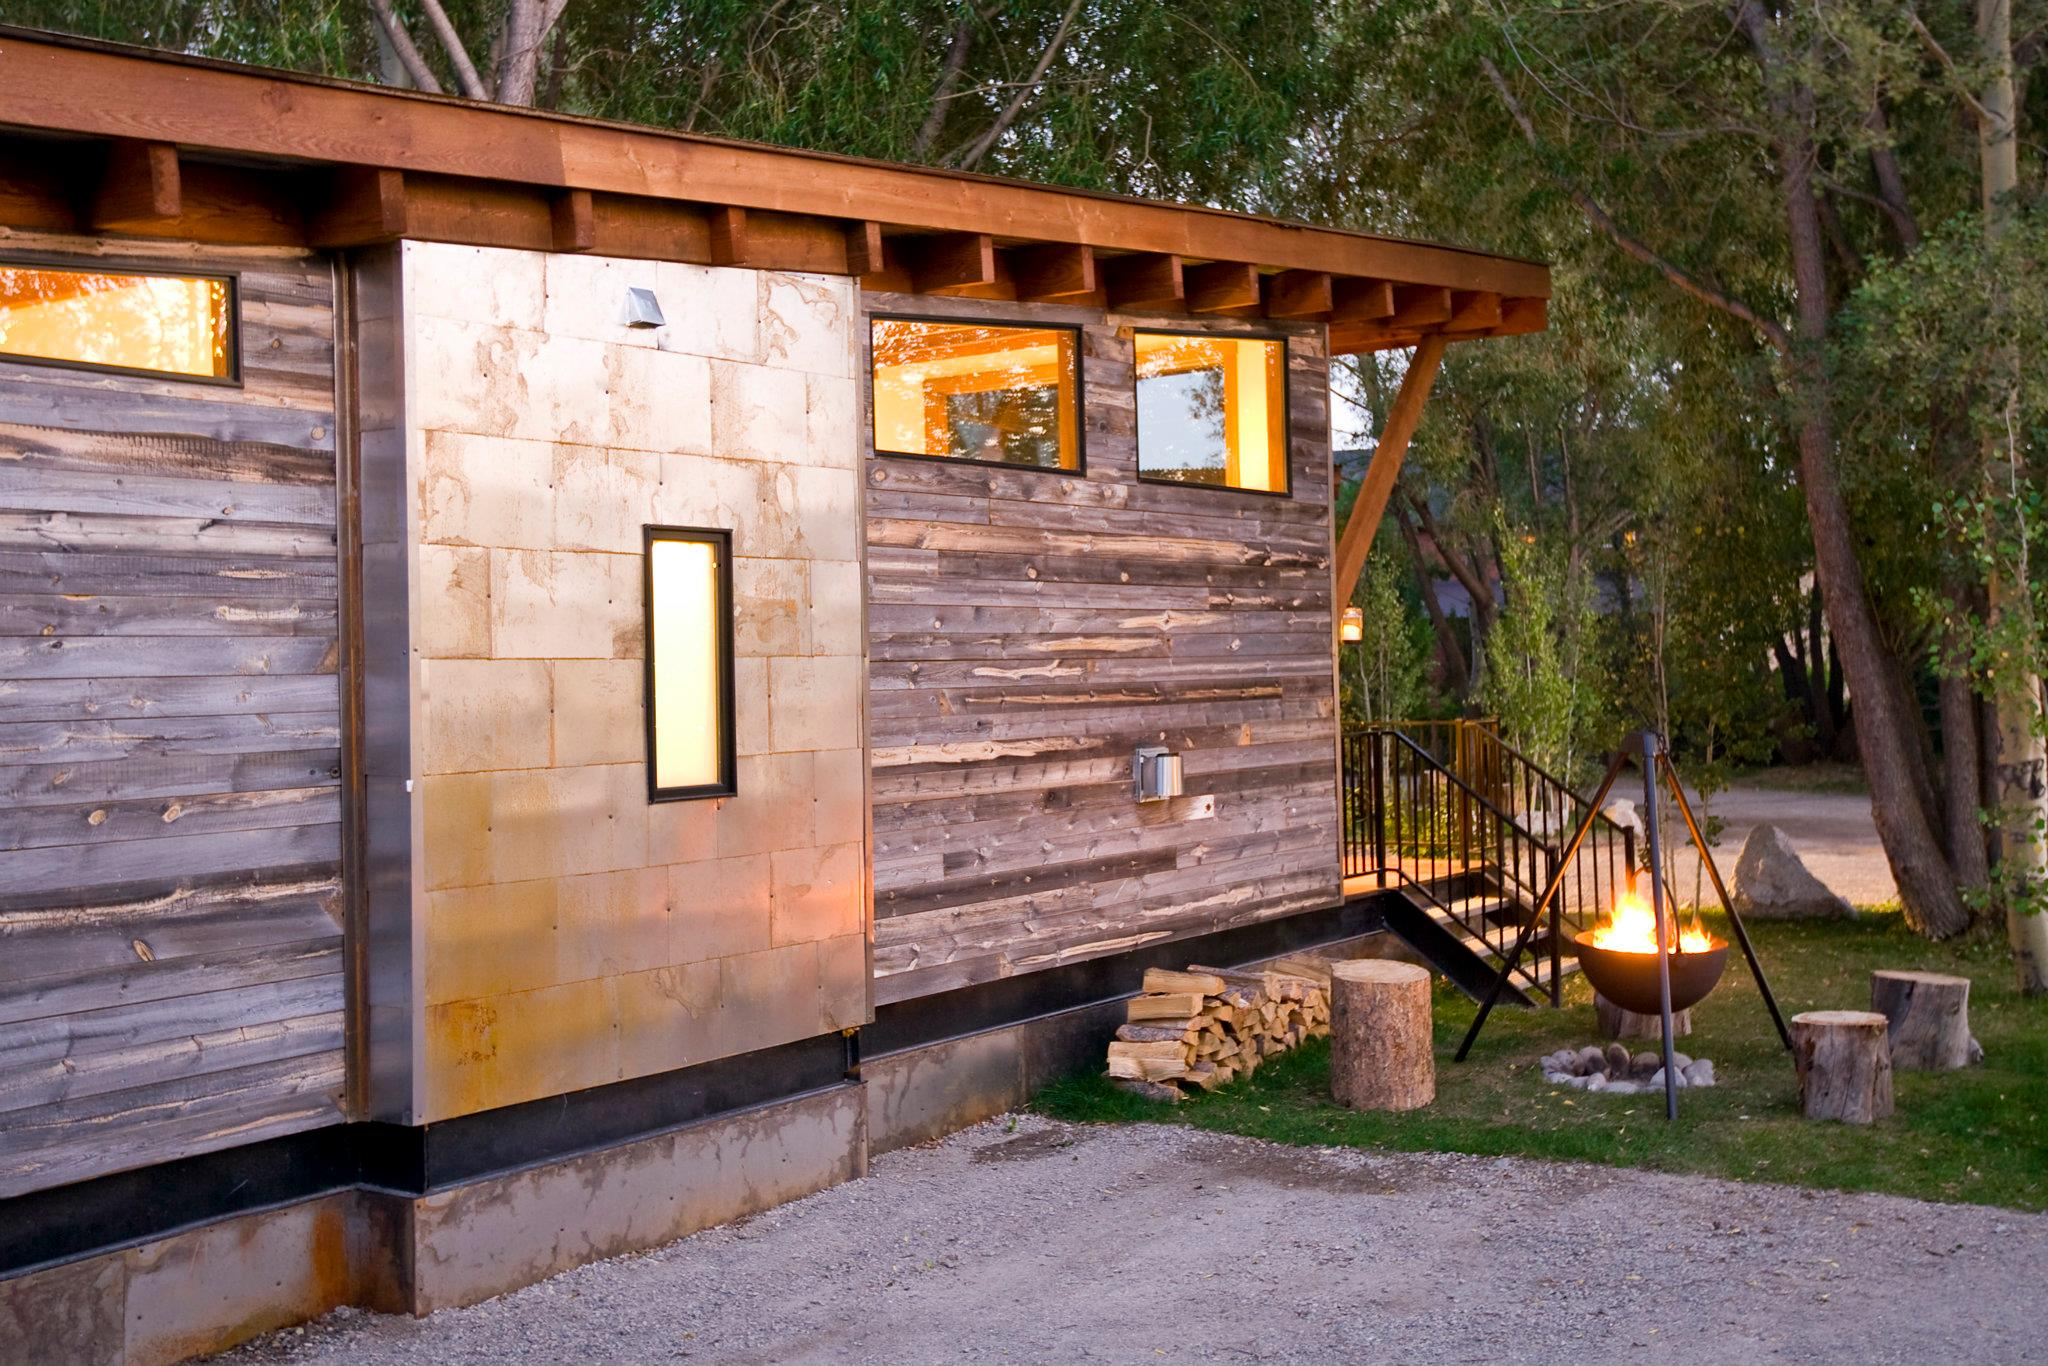 Gallery: The Wedge, A Small Cabin On Wheels | Small House Bliss